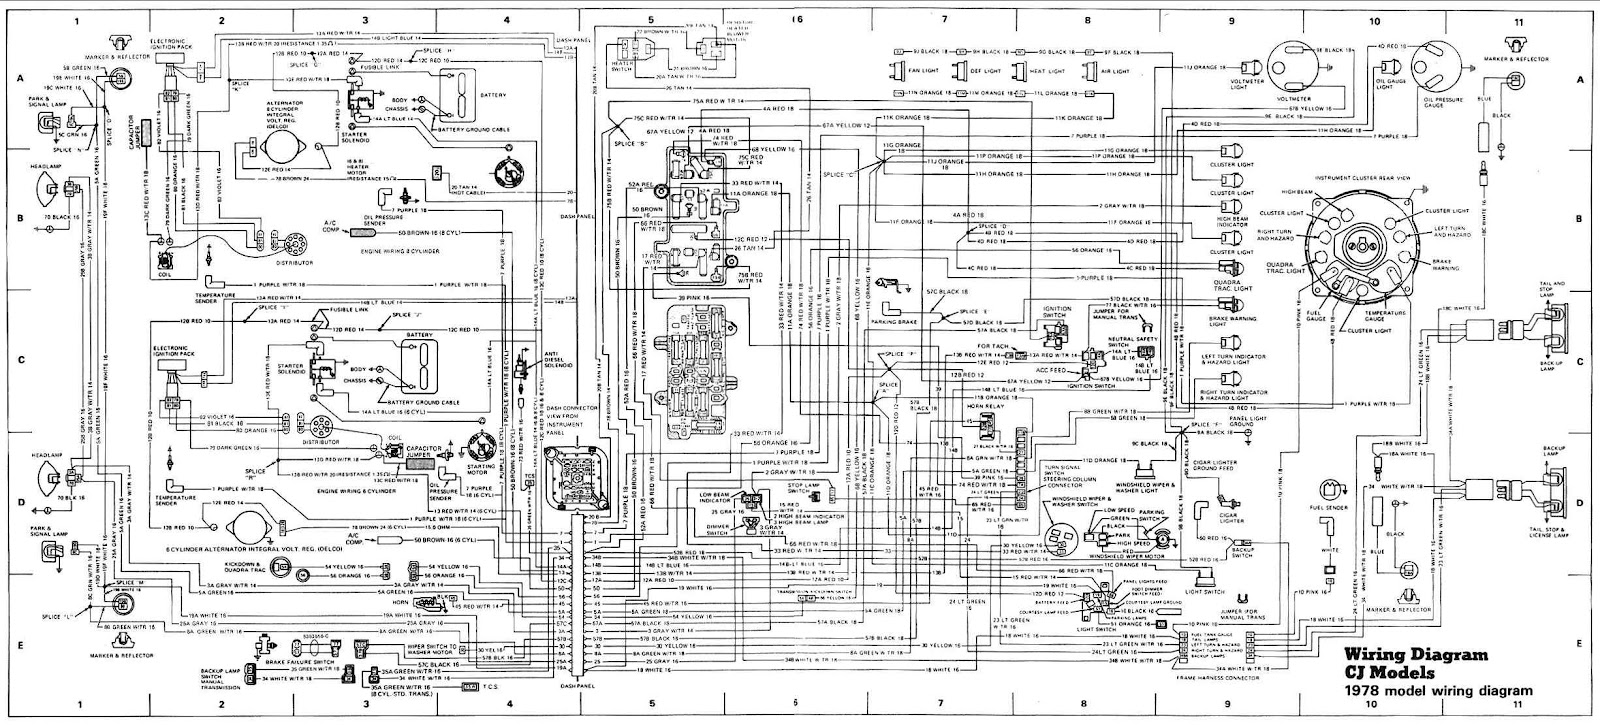 Jeep CJ Models 1978 Complete Electrical Wiring Diagram jeep stereo wiring diagram jeep free wiring diagrams 2003 jeep liberty radio wiring diagram at webbmarketing.co